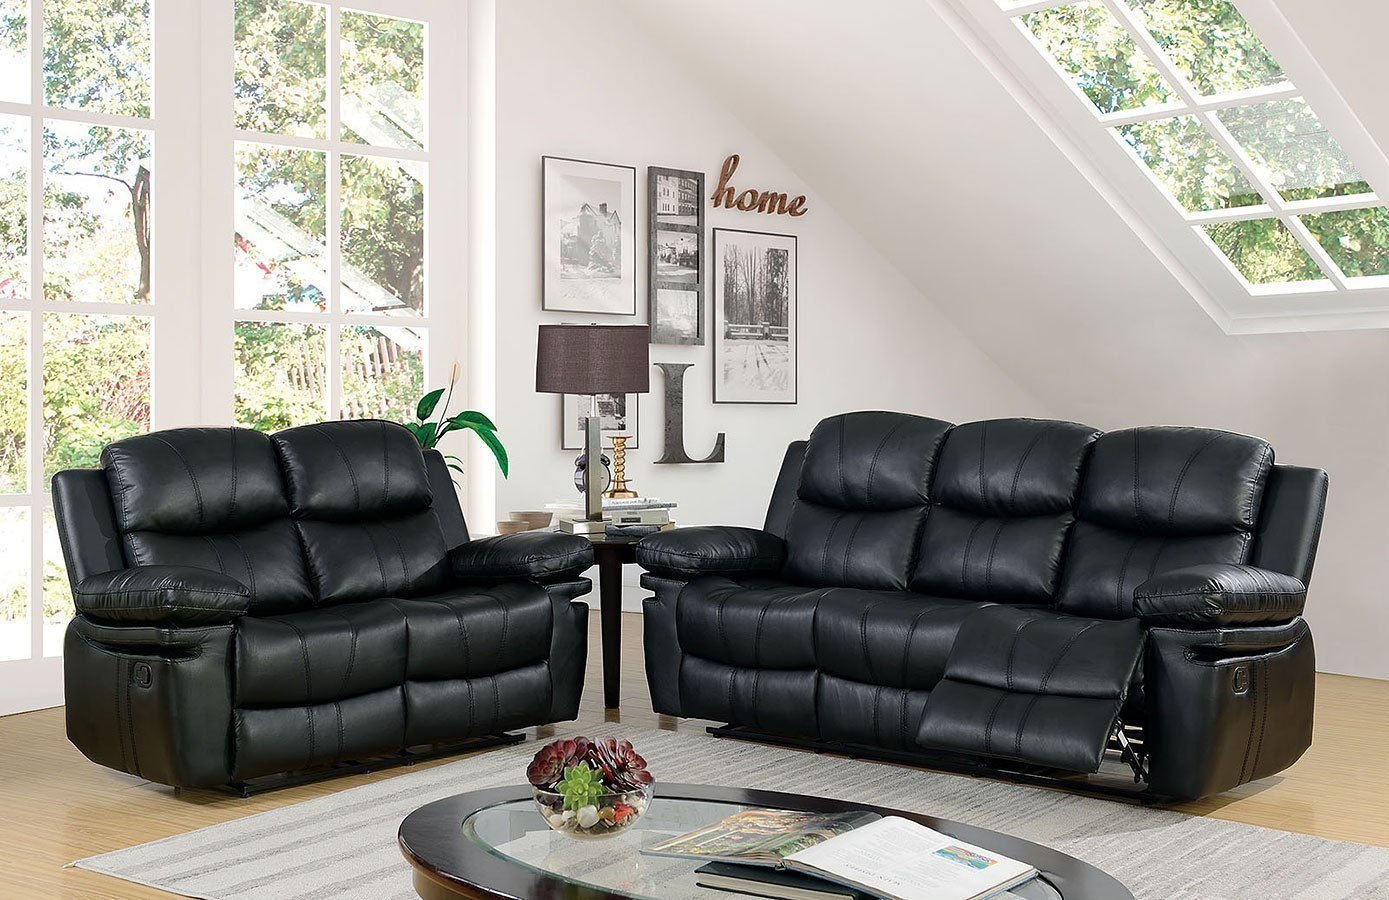 Listowel Reclining Living Room Set (Black)